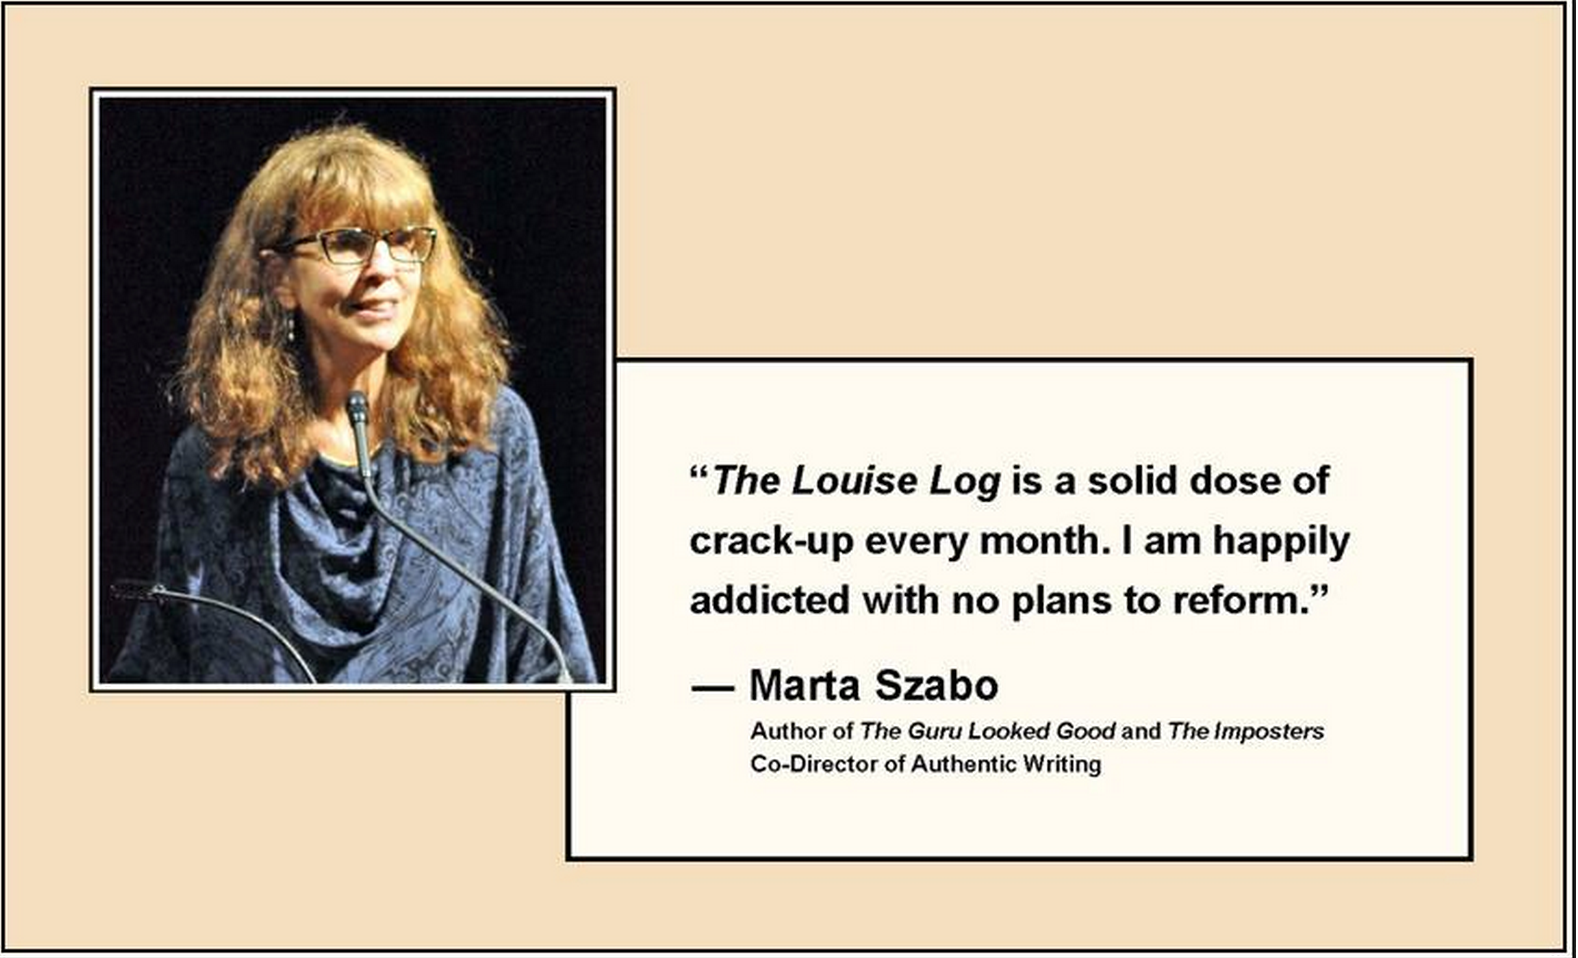 Find out more about Marta:     Marta's Books on Amazon      Experiments In Memoir       Authentic Writing Website      @MemoirWriter on Twitter      Marta on Facebook         (If you'd like us to feature your quote, please send it along with a photo to anne@thelouiselog.com.)